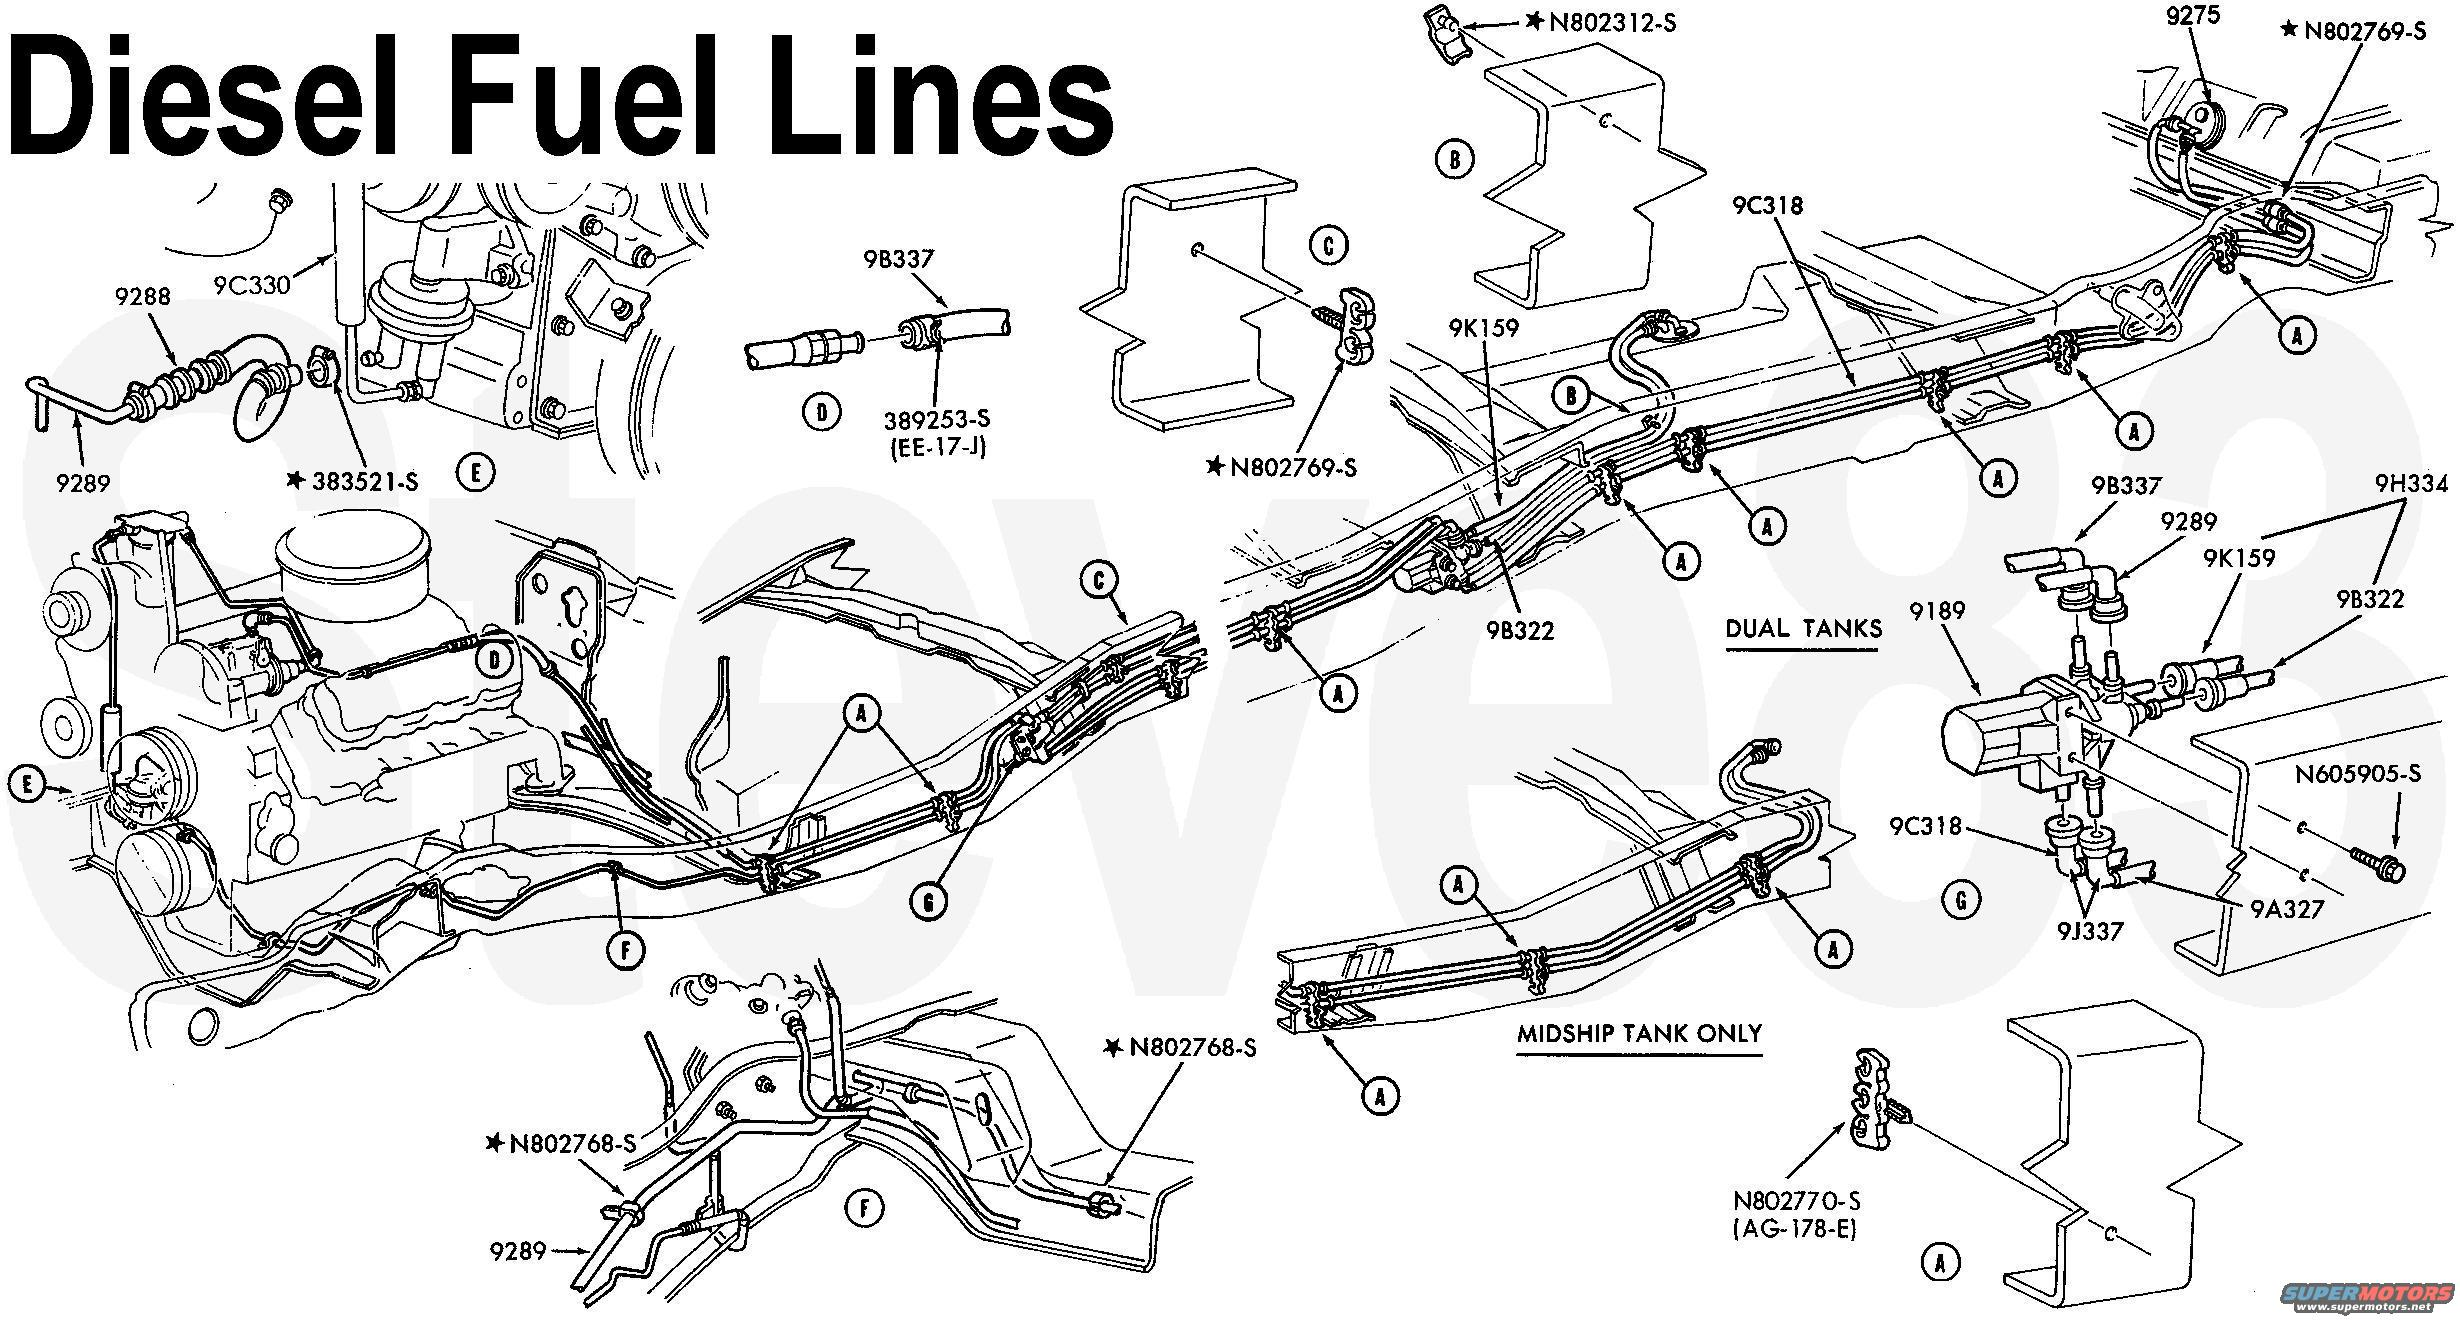 1995 Ford F 350 7 3 Fuel Filter Location - Wiring Diagram ...